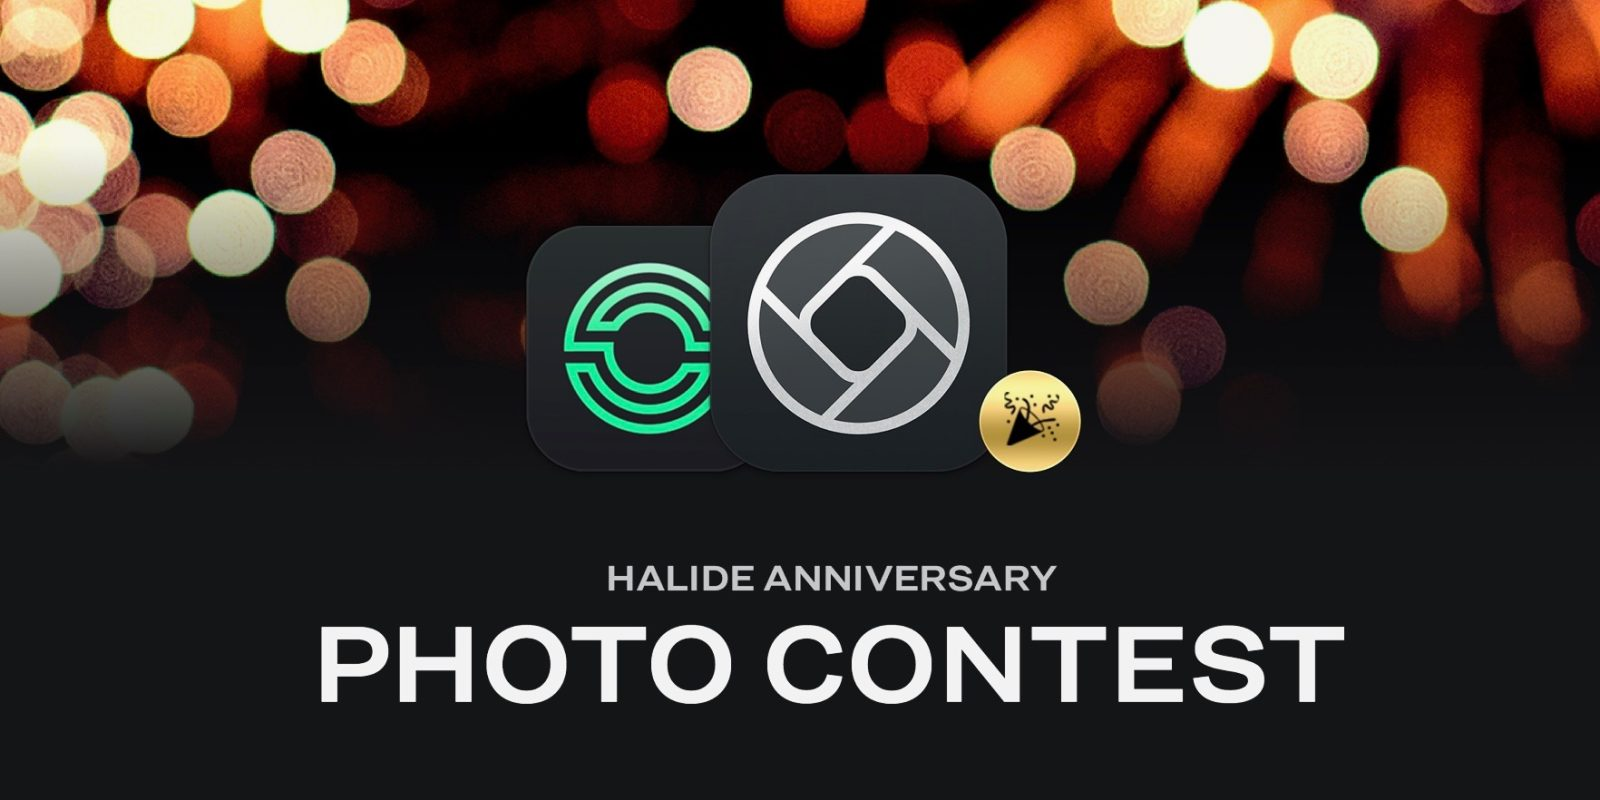 Halide iPhone app celebrates 2nd anniversary with photo contest, $5,000 Leica camera as top prize